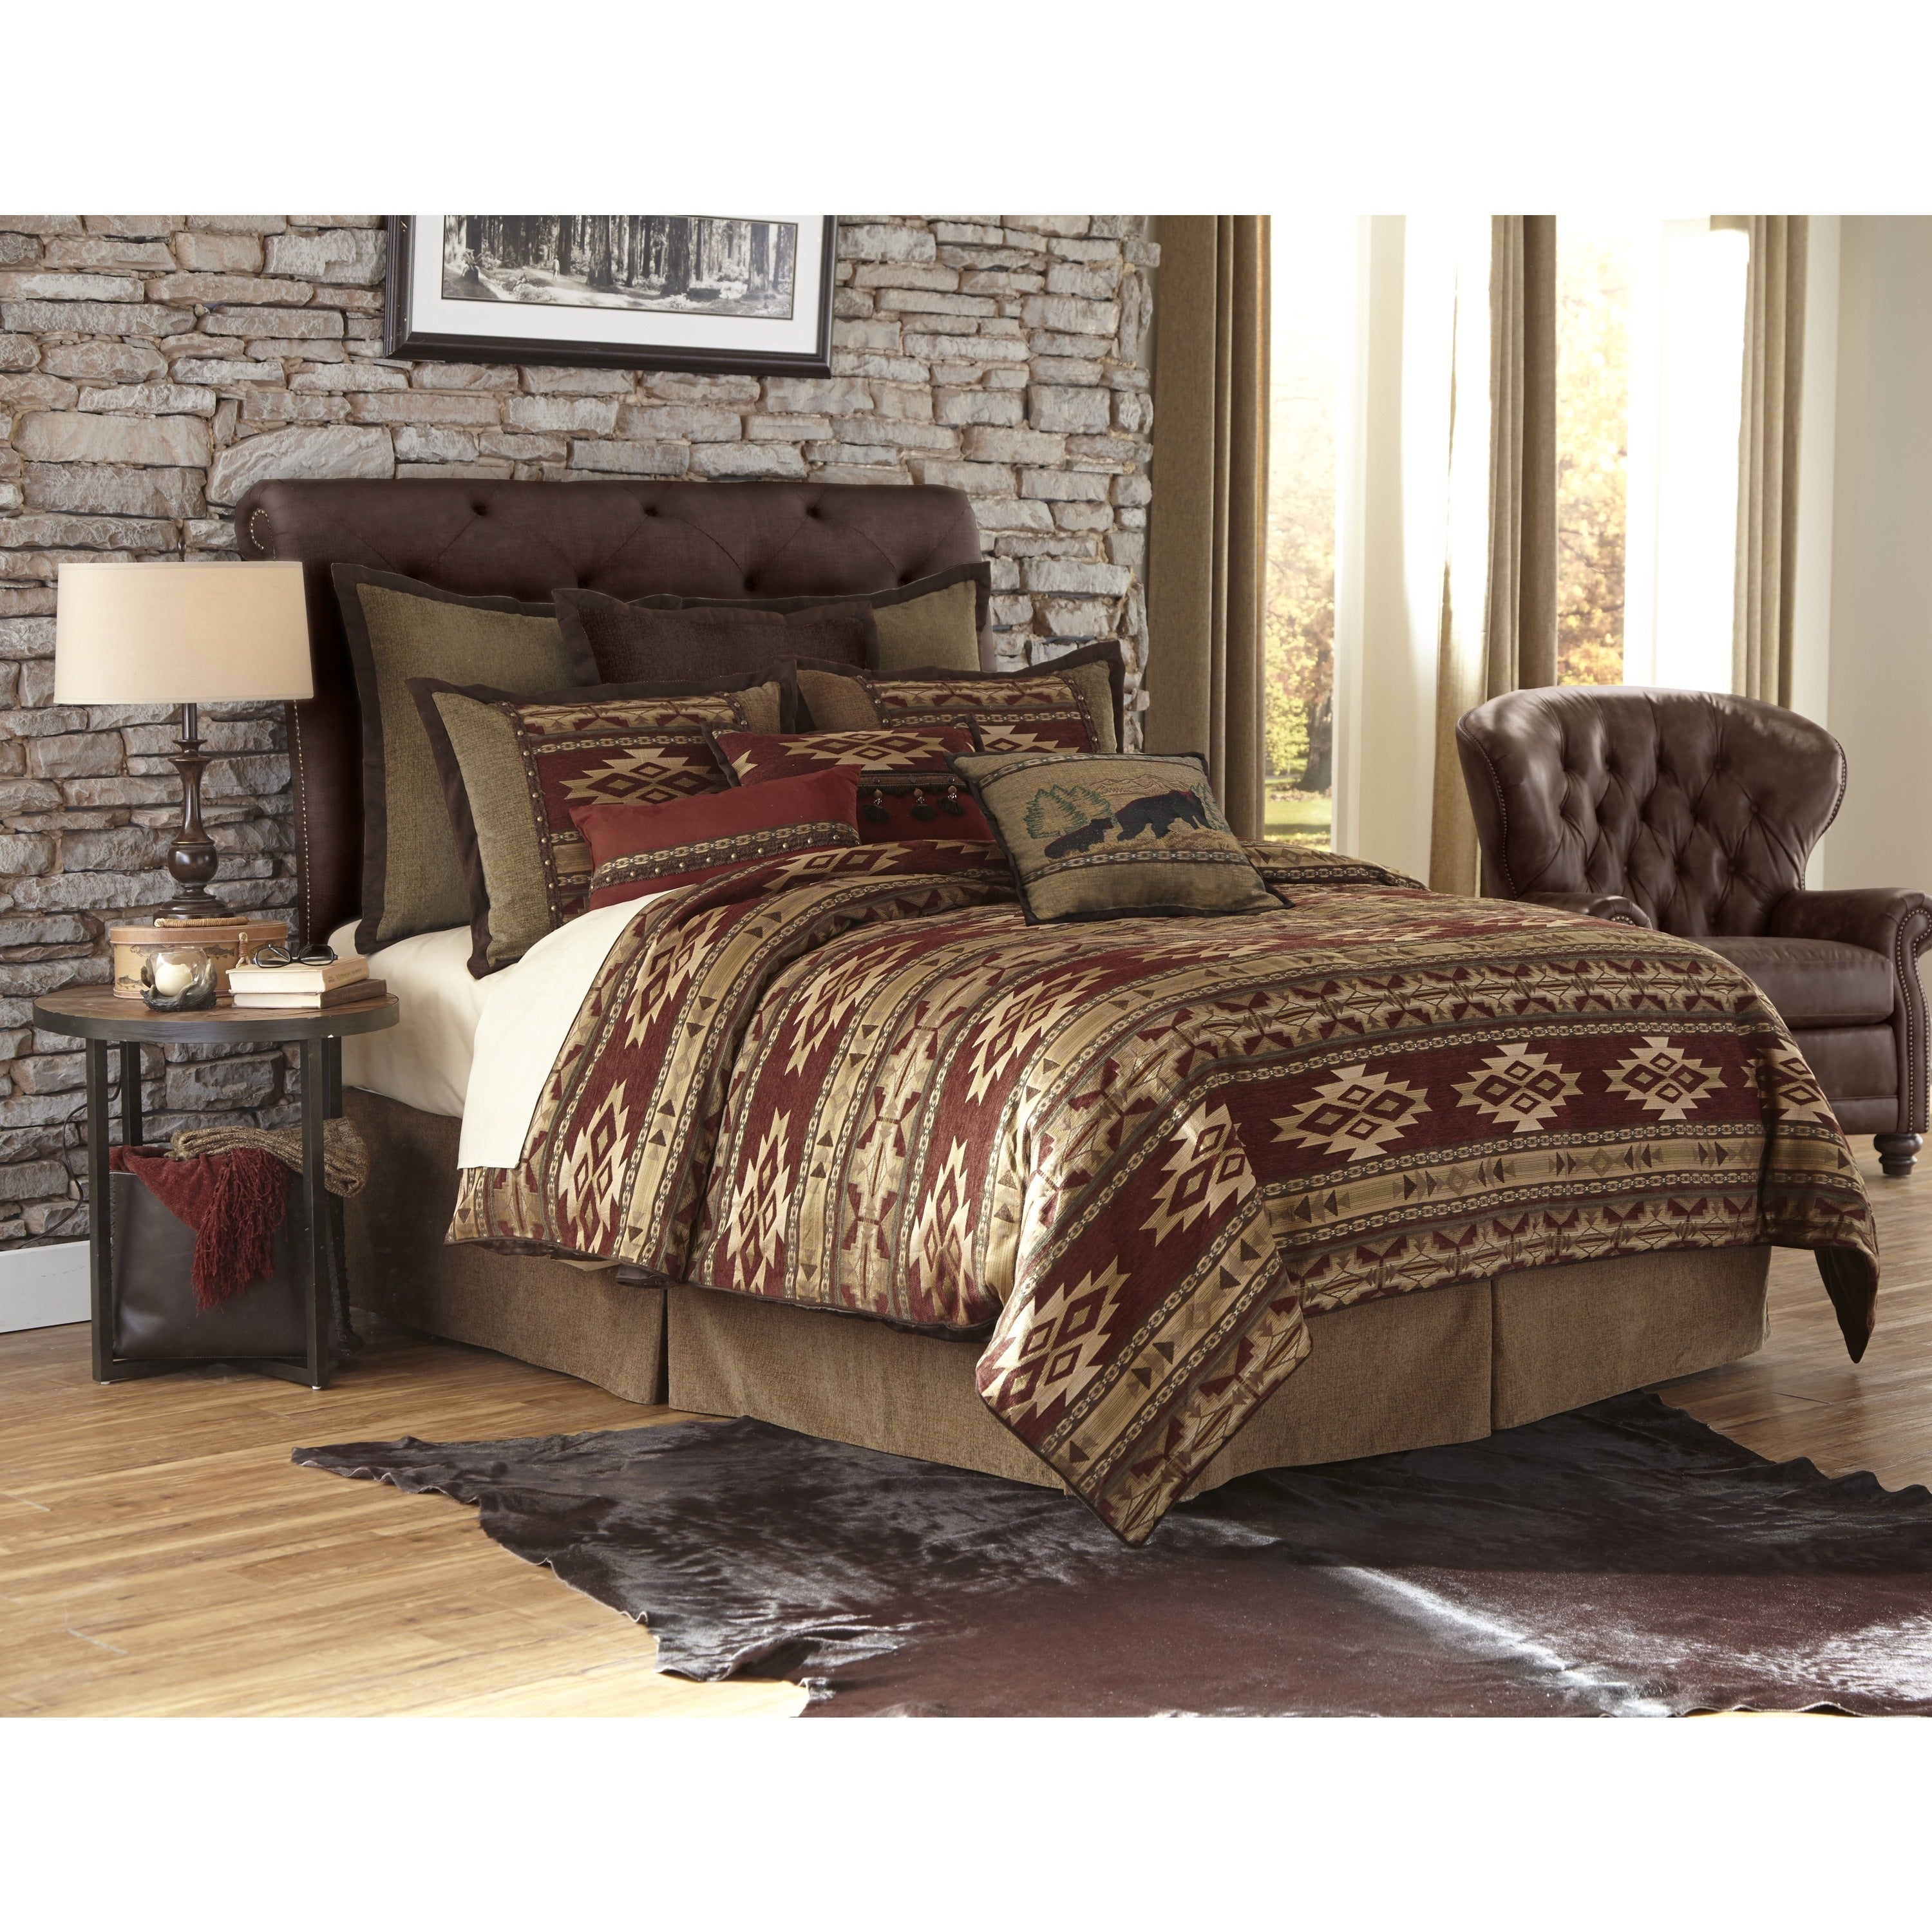 flannel king forter set southwestern of gray home comforters aztec design tan duds ideas pc tribal comforter nafis cuddl